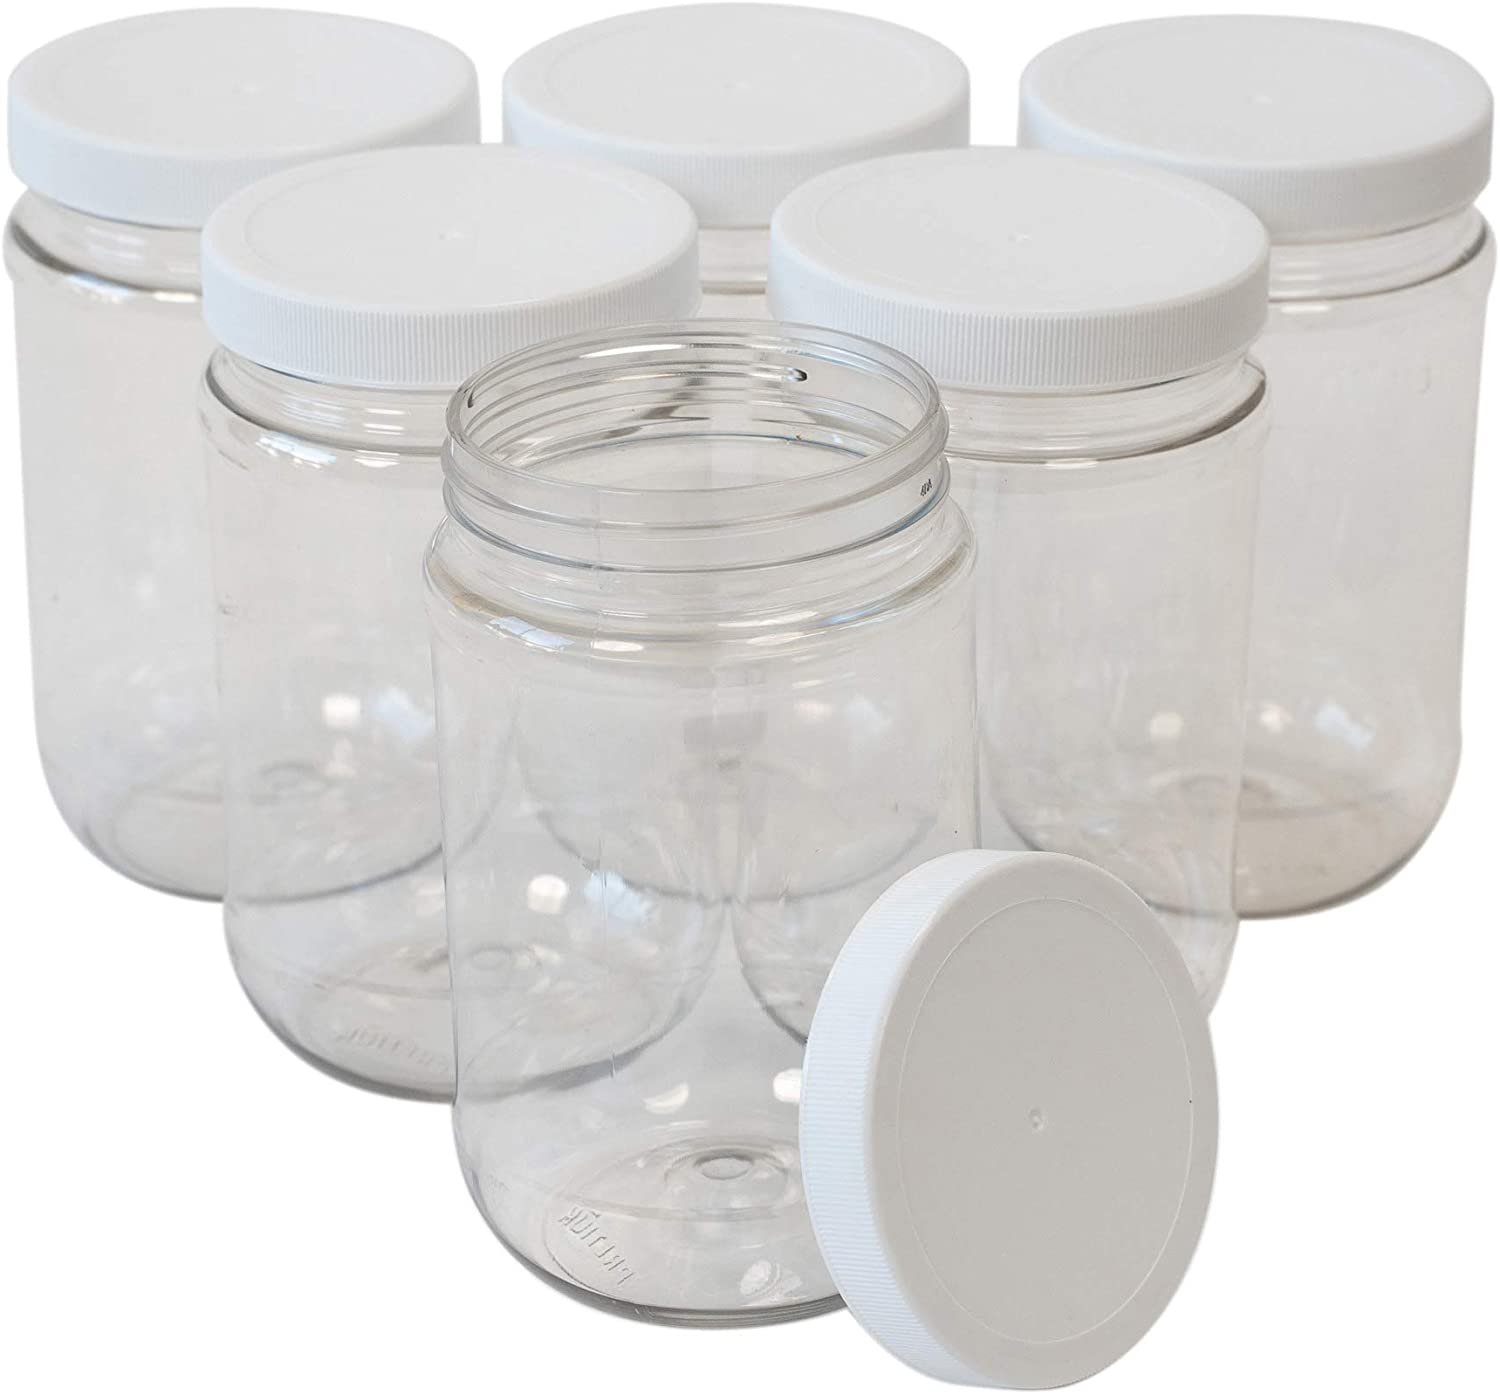 Amazon Com Csbd 16 Oz Clear Plastic Mason Jars With Ribbed Liner Screw On Lids Wide Mouth Eco Bpa Free Pet Plastic Made In Usa Bulk Storage Containers 6 Pack 16 Ounces Kitchen